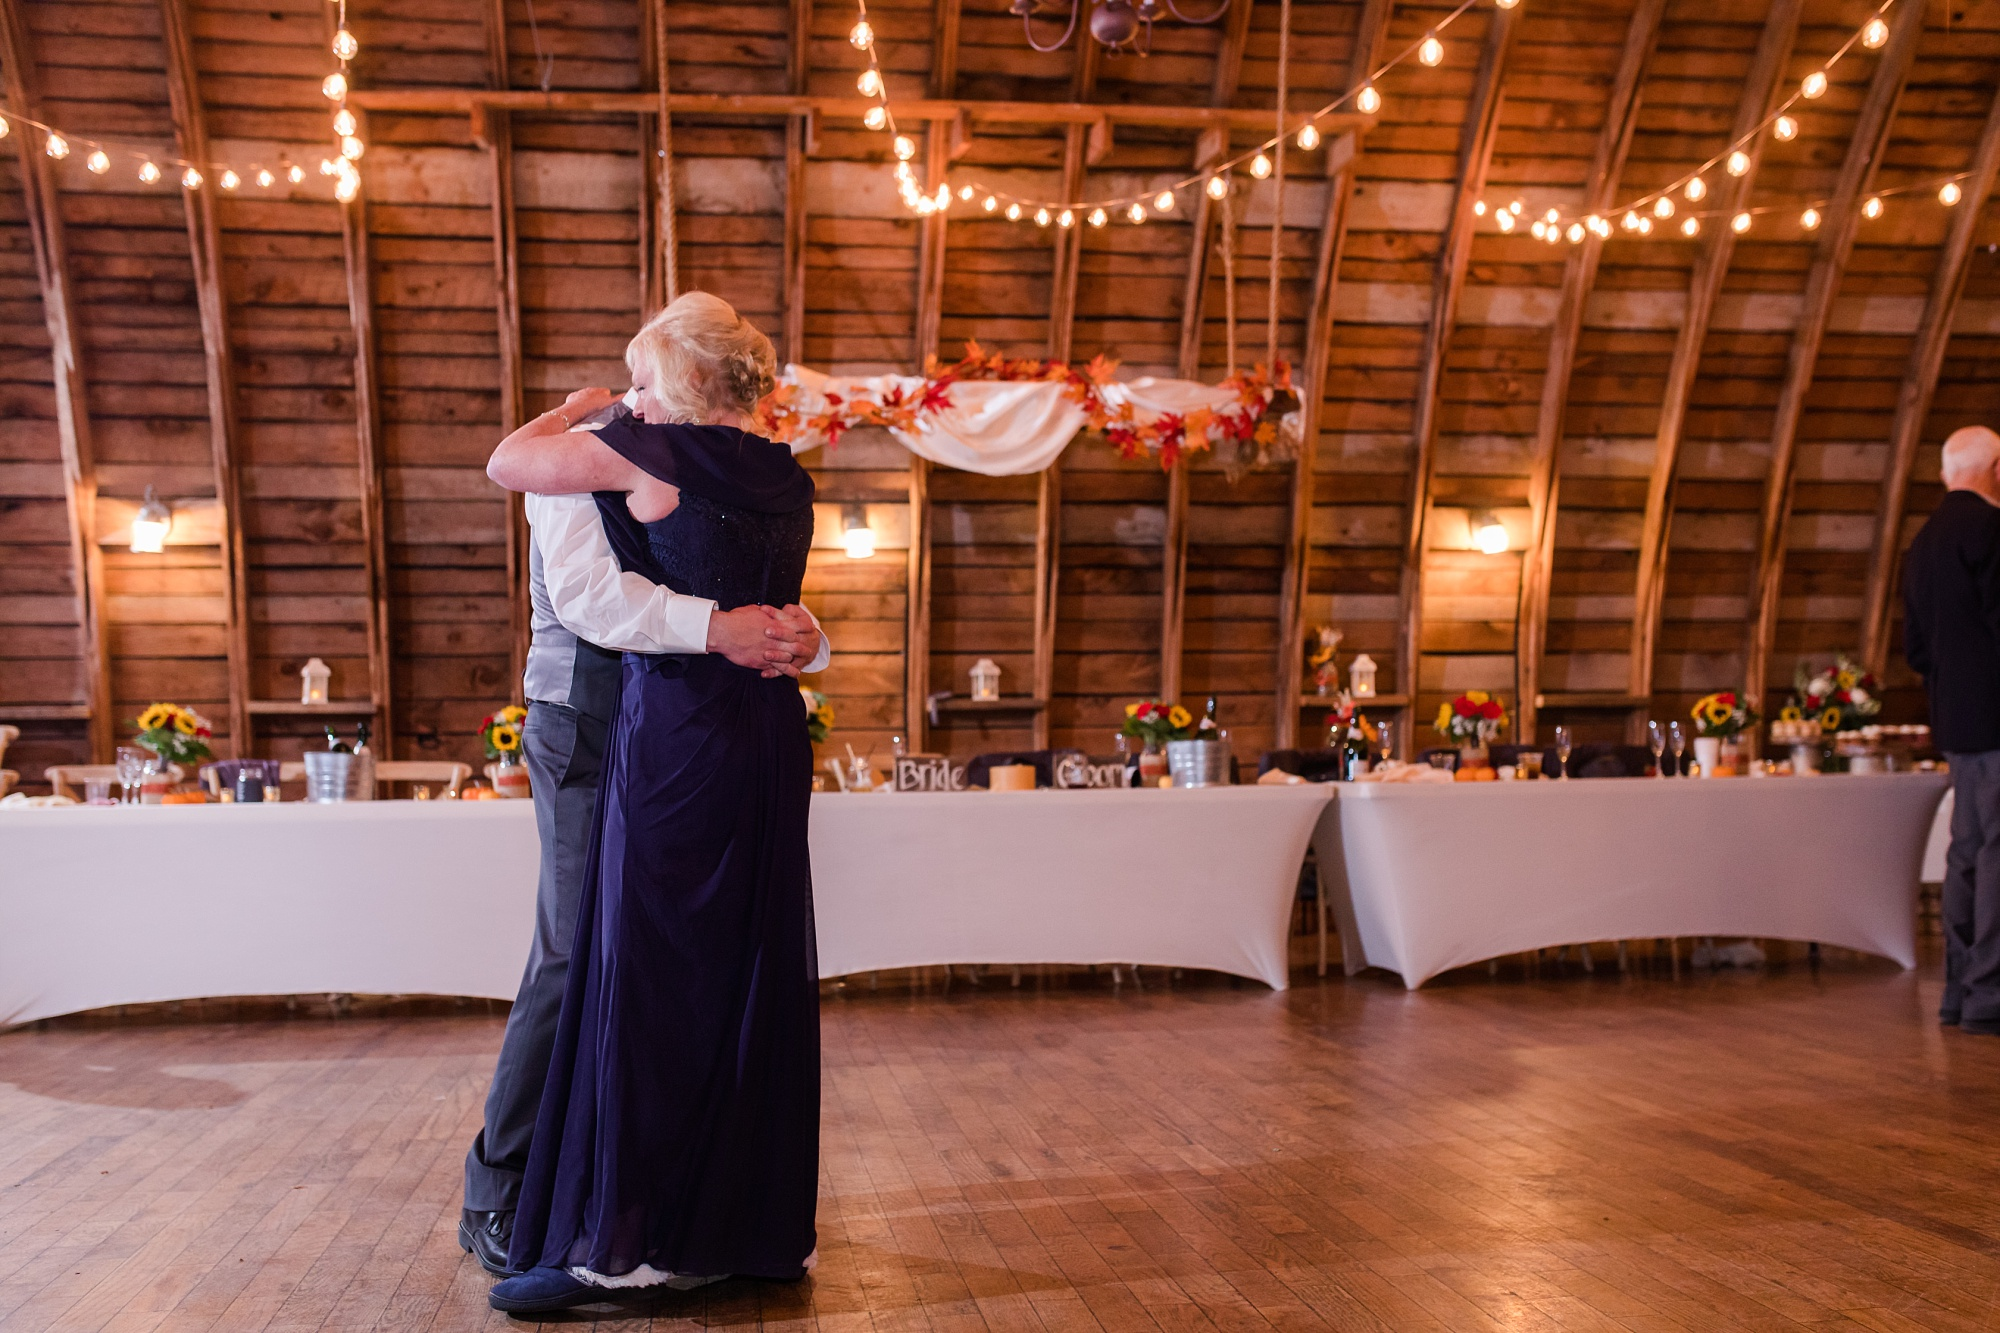 Amber Langerud_Rustic Oaks, MN winter barn wedding_0564.jpg